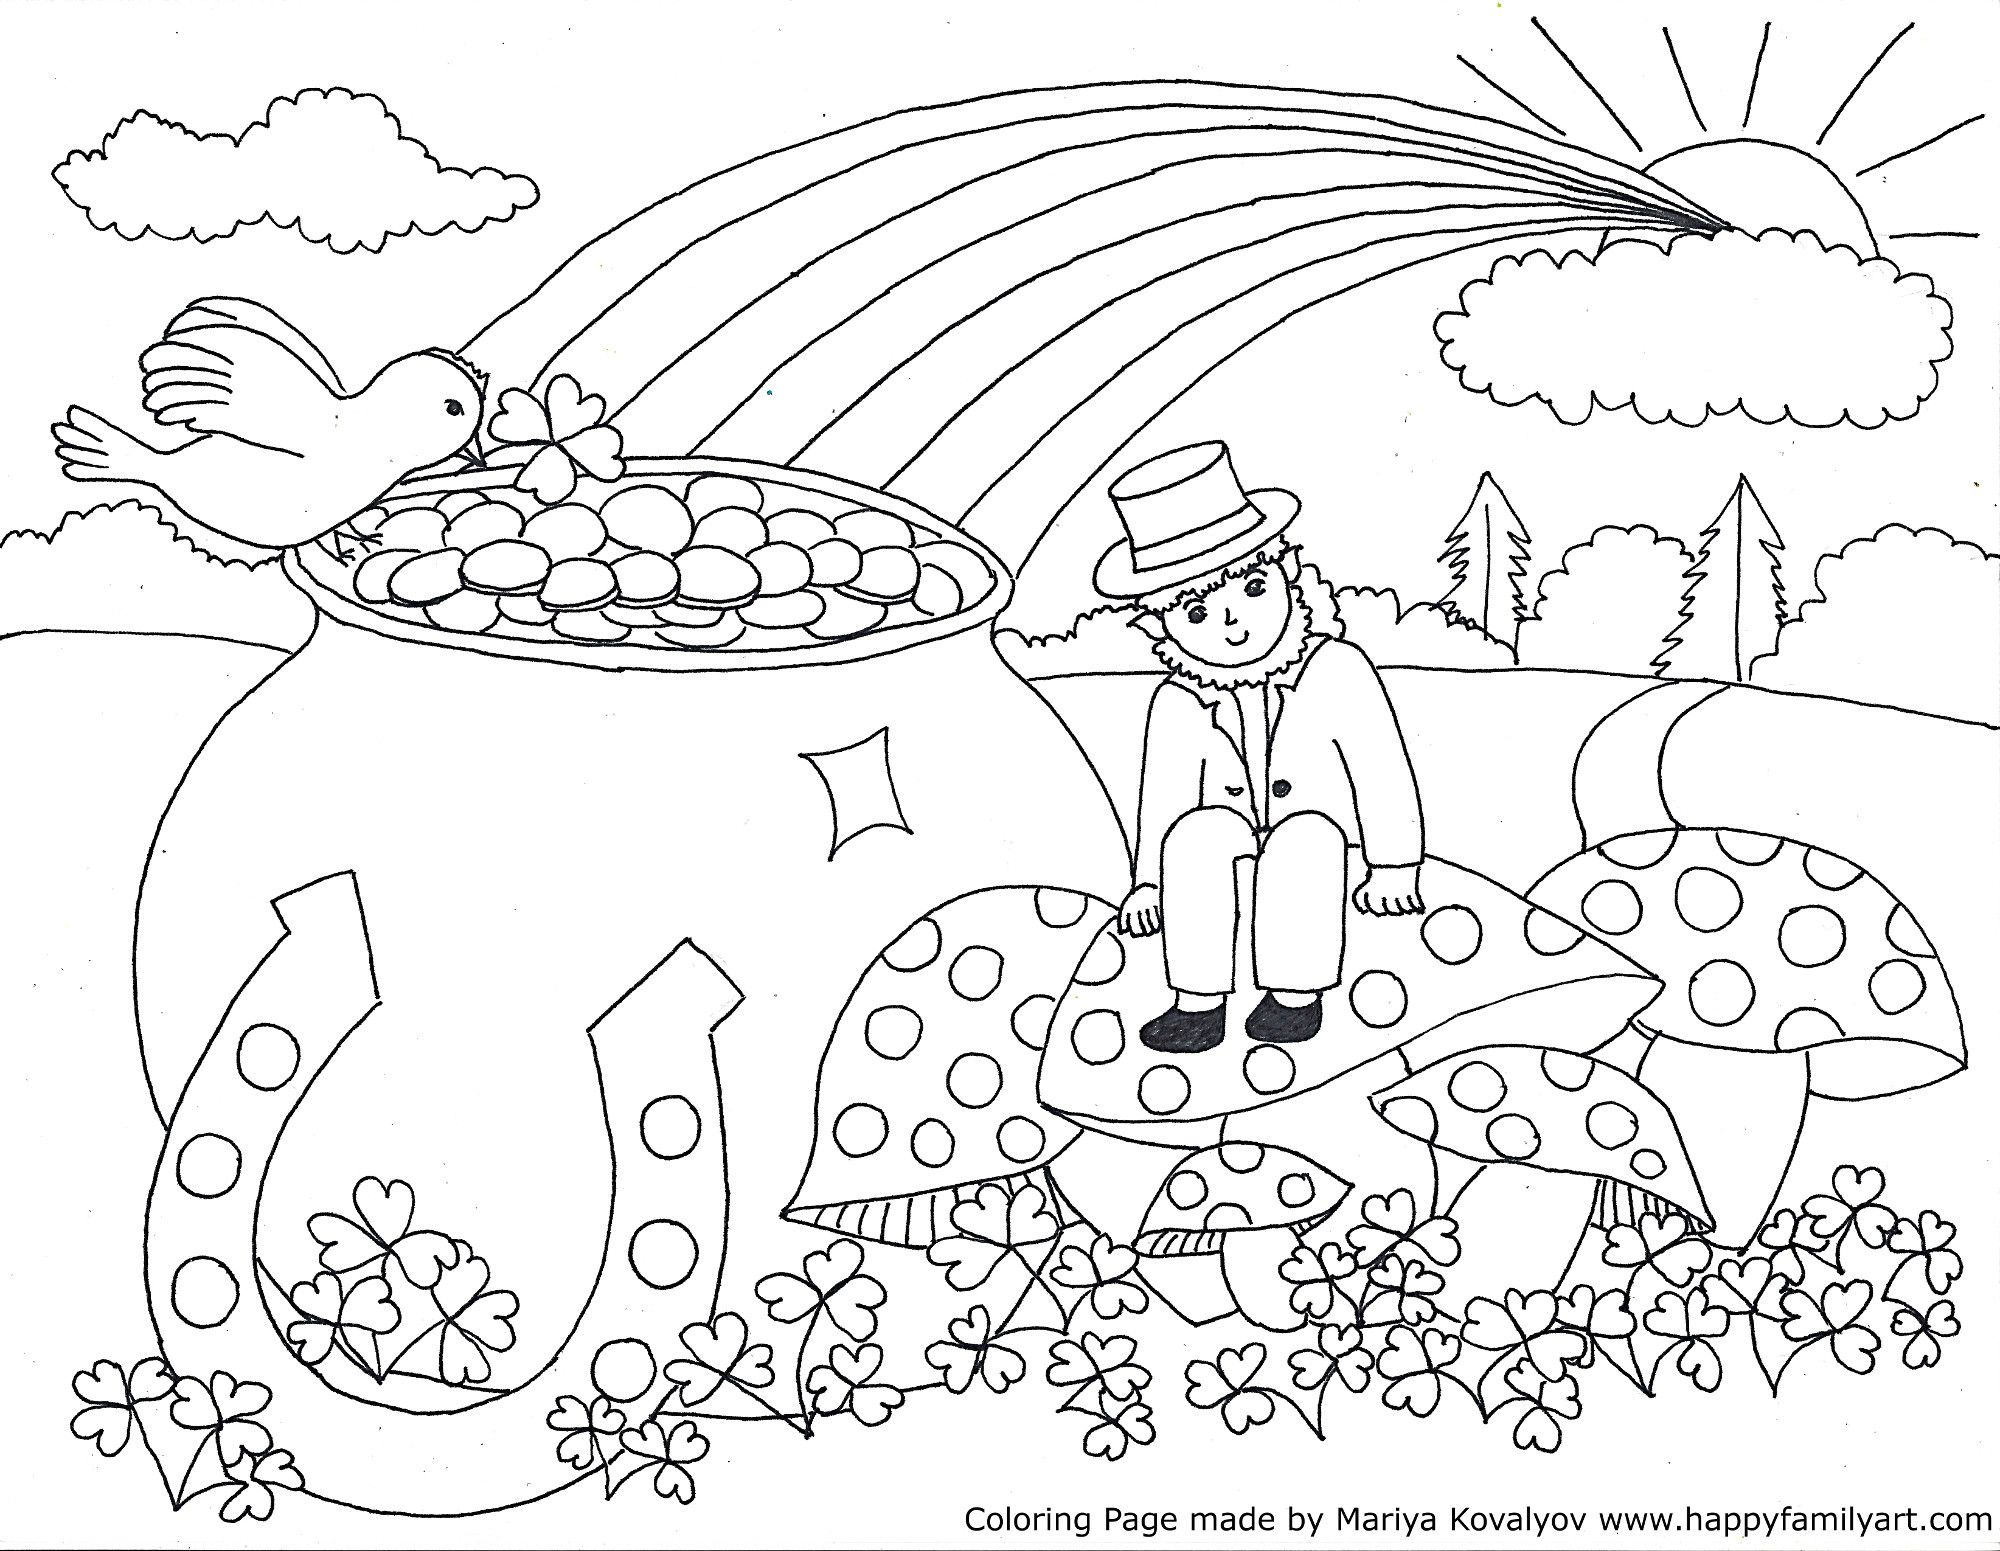 Stpatriksmedium - | Coloring Pages | Pinterest | St Patrick, St - Free Printable St Patrick Day Coloring Pages